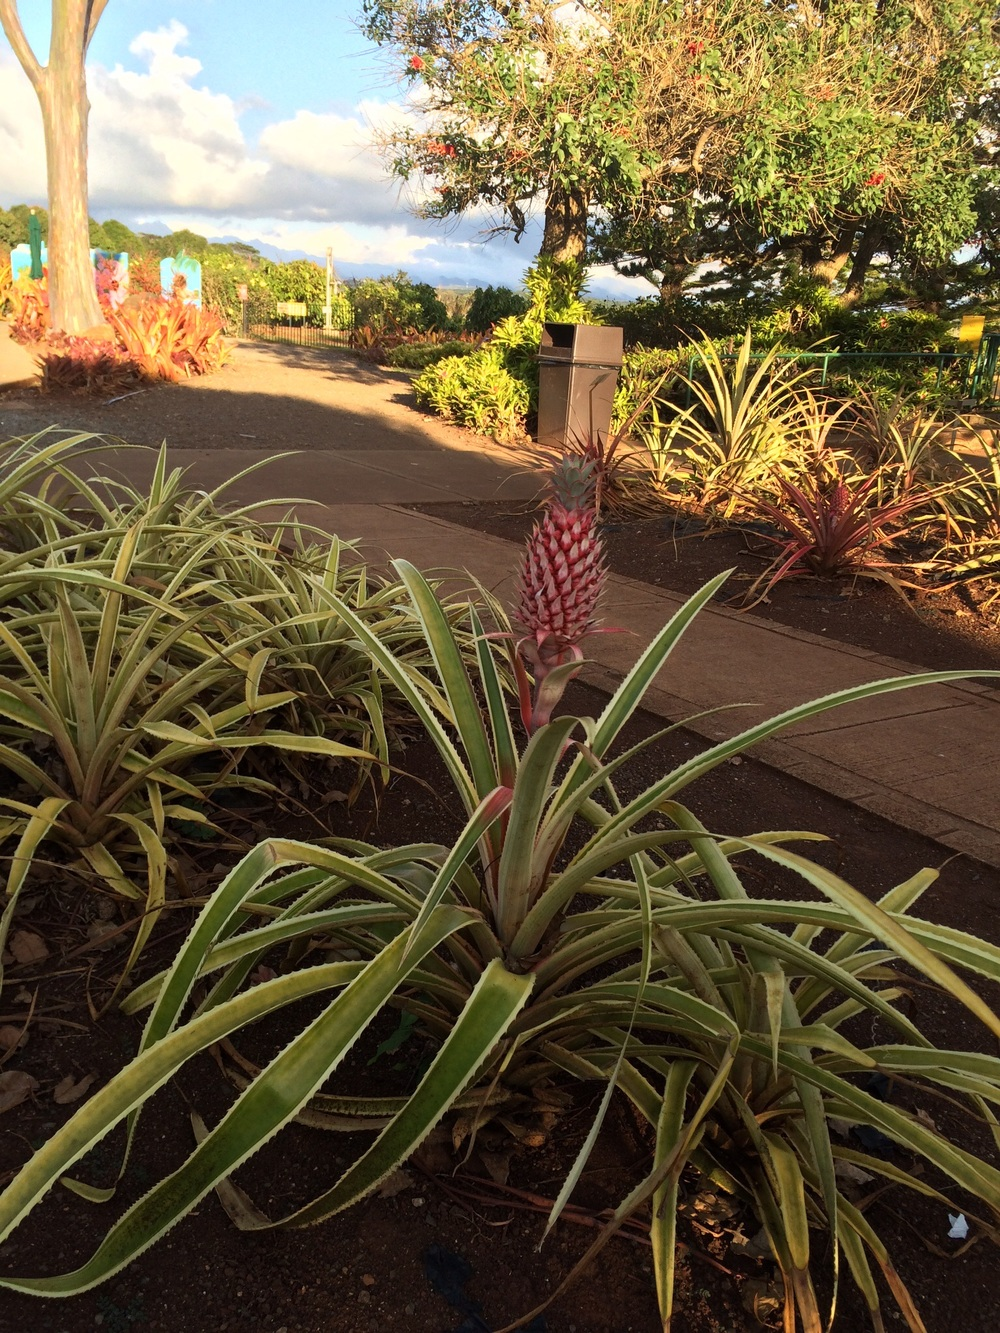 Pineapple plant at the Dole Plantation